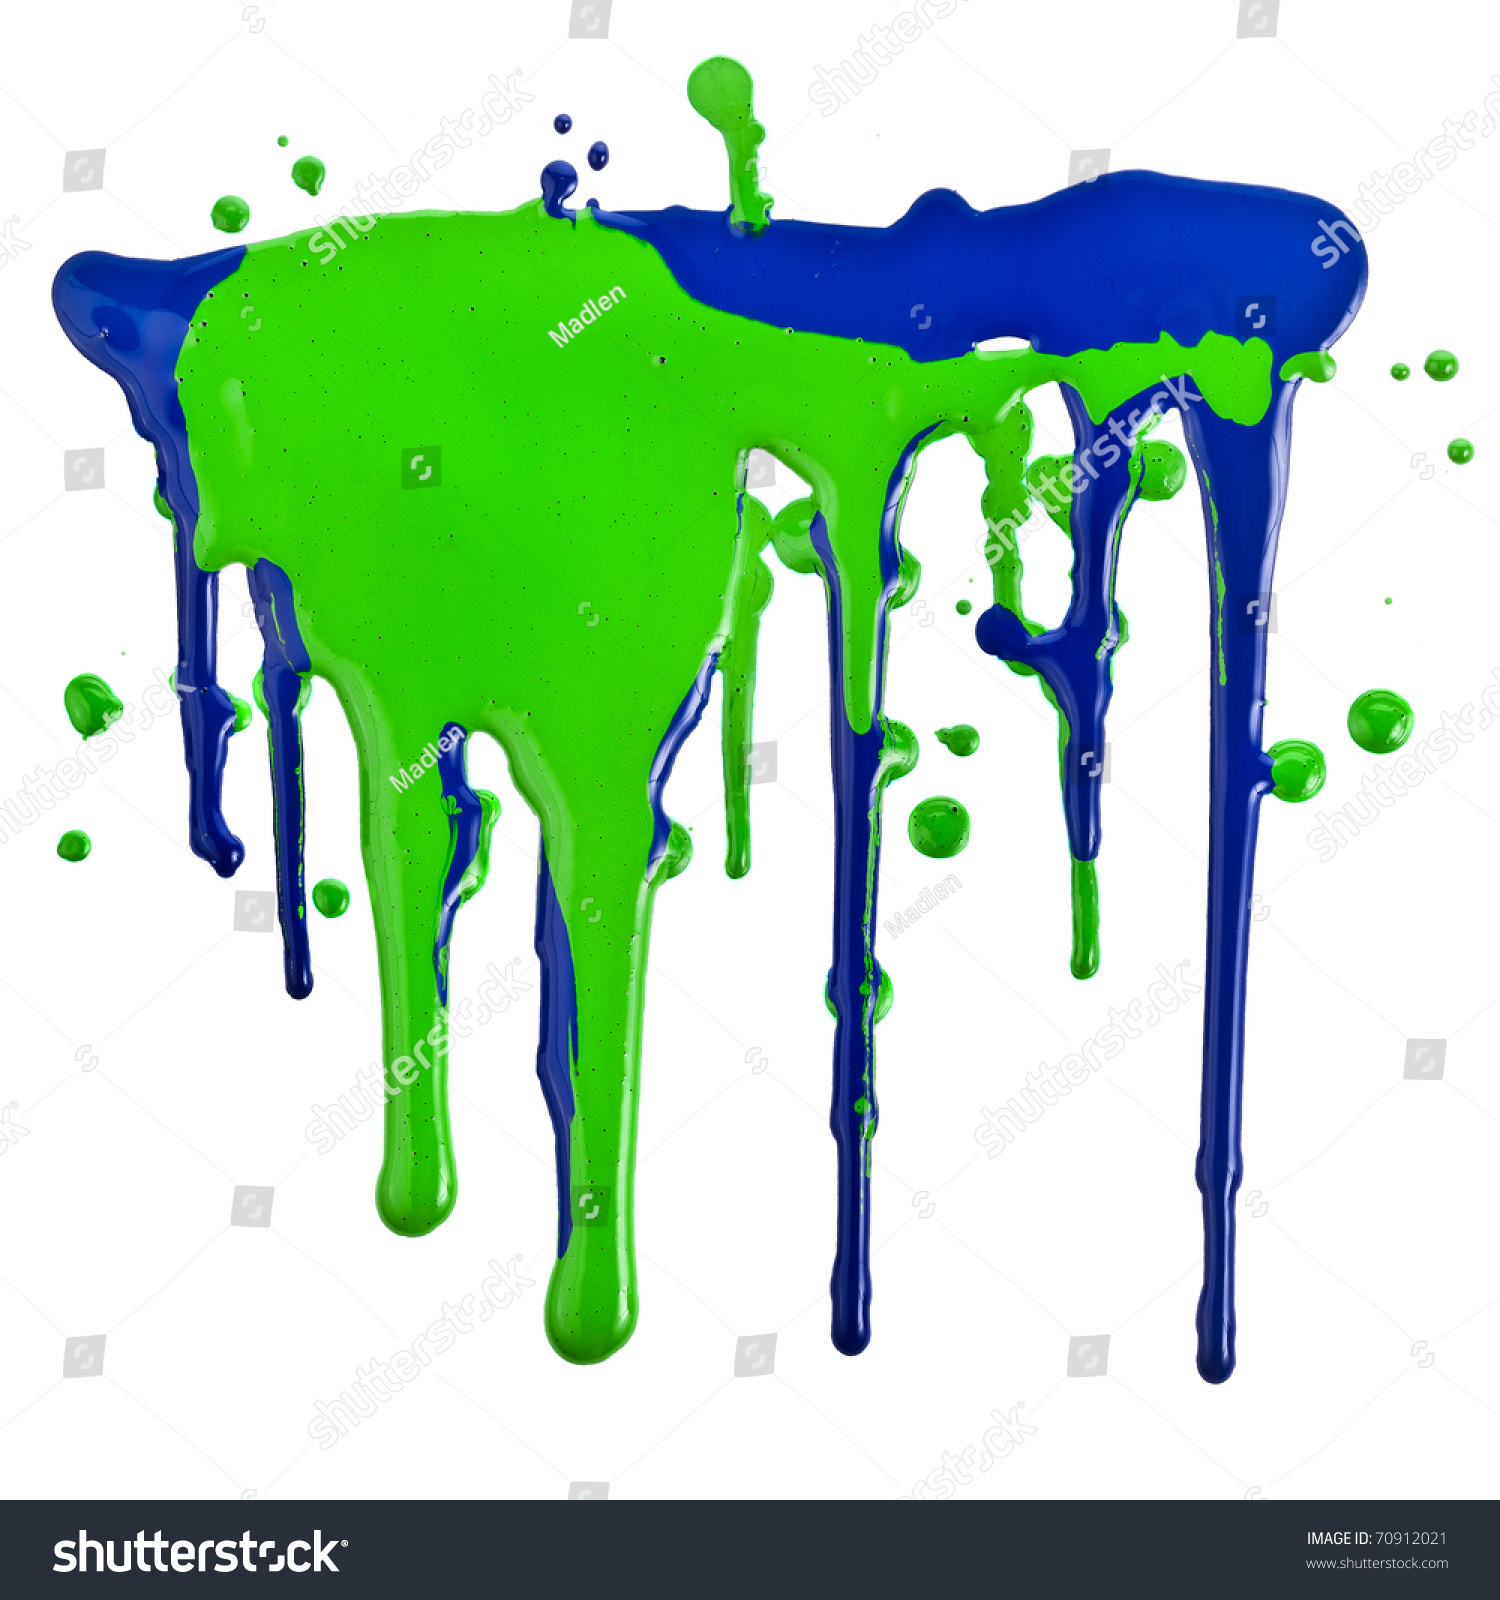 Colorful Paint Dripping Isolated On White Stock Photo ...